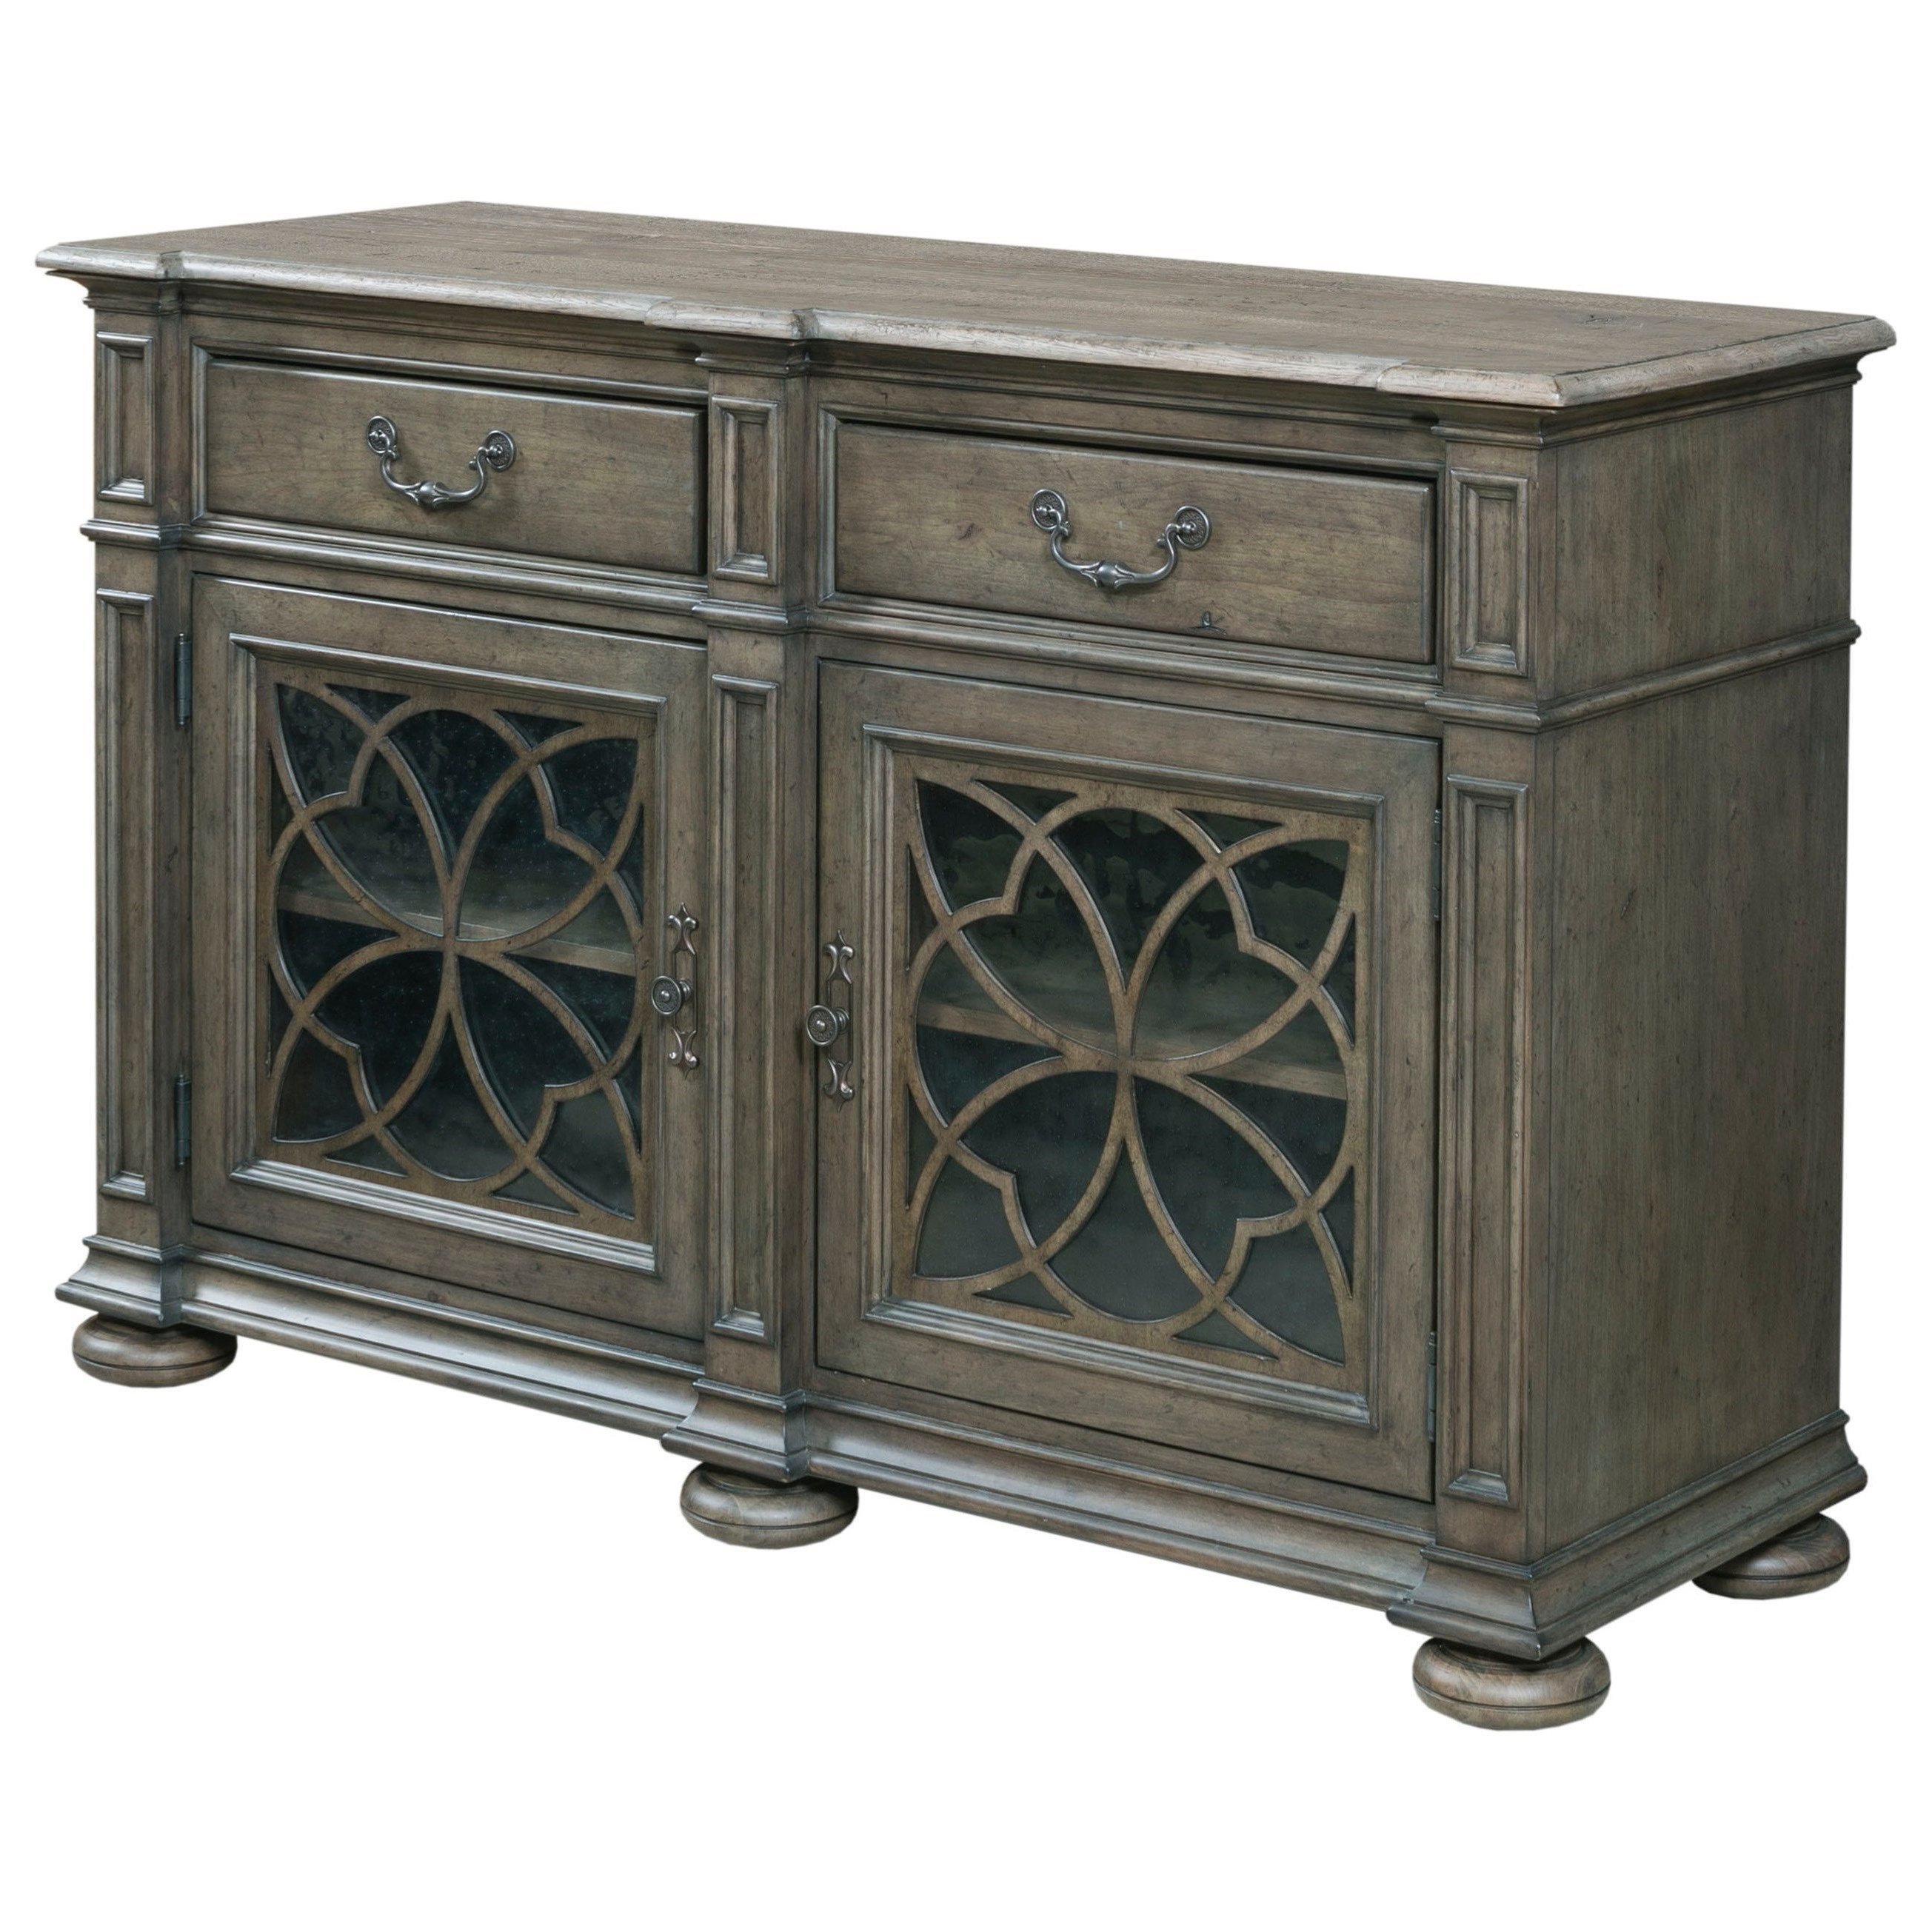 Kratz Sideboards With Regard To Current Kincaid Furniture Greyson Harper Two Door Buffet With (View 13 of 20)